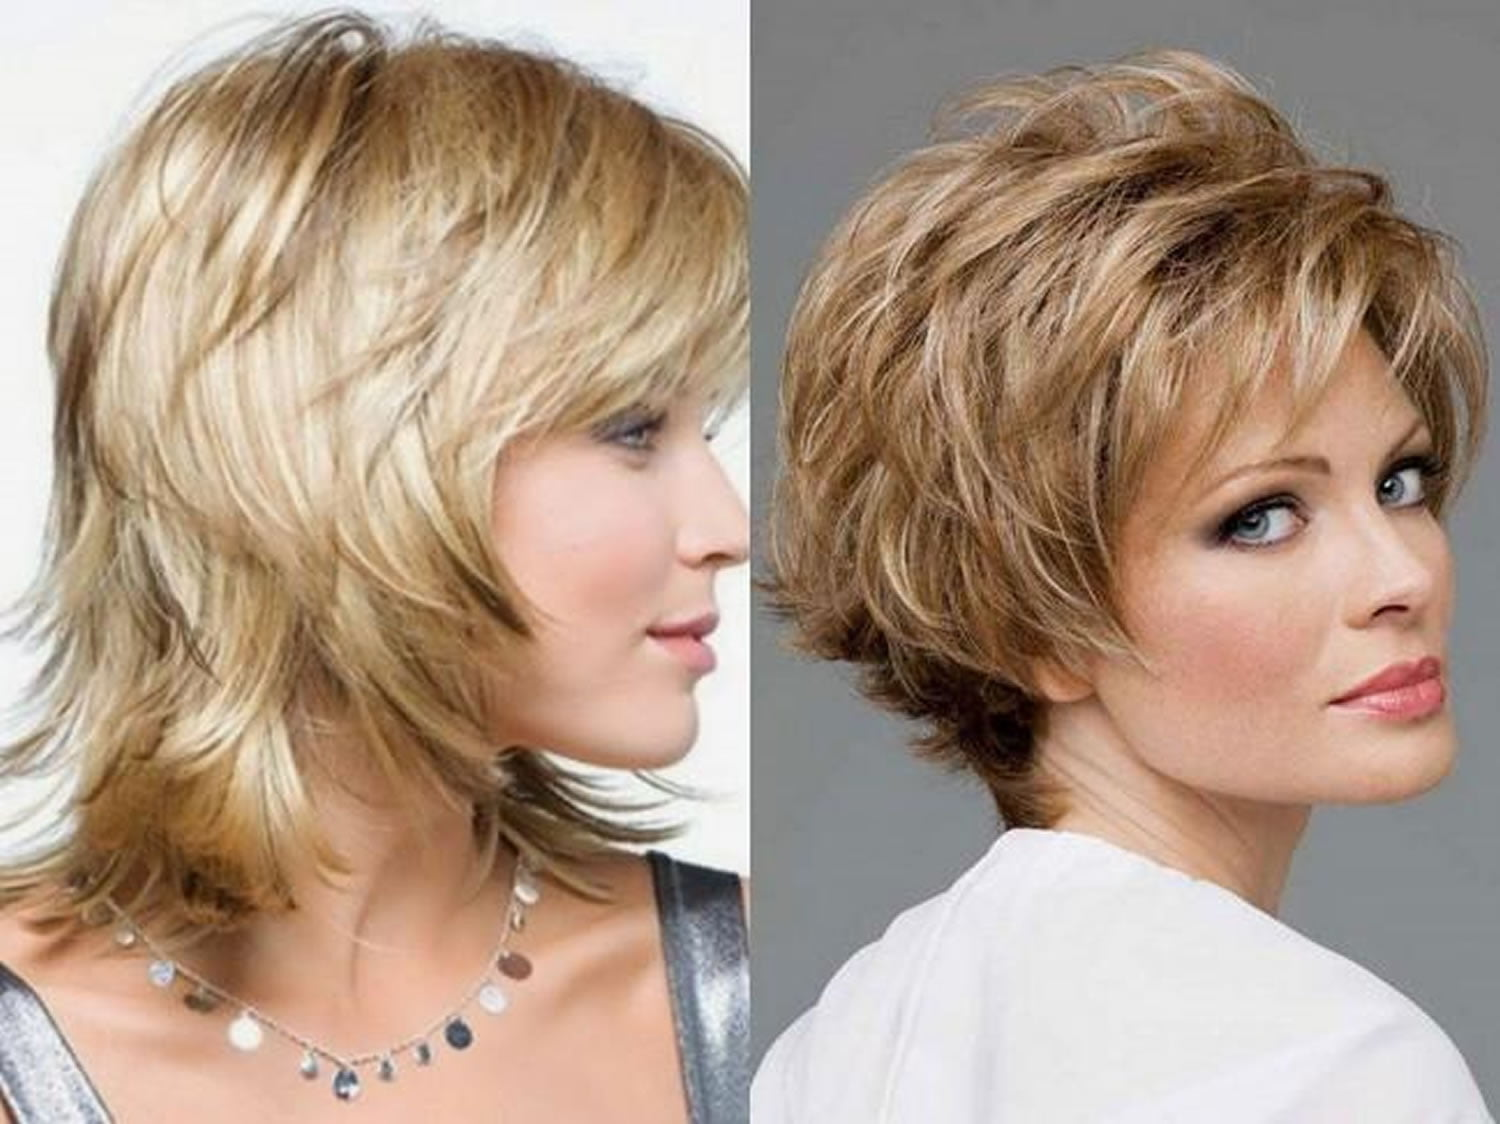 Short haircuts and hair color ideas for women for spring summer 2018-2019